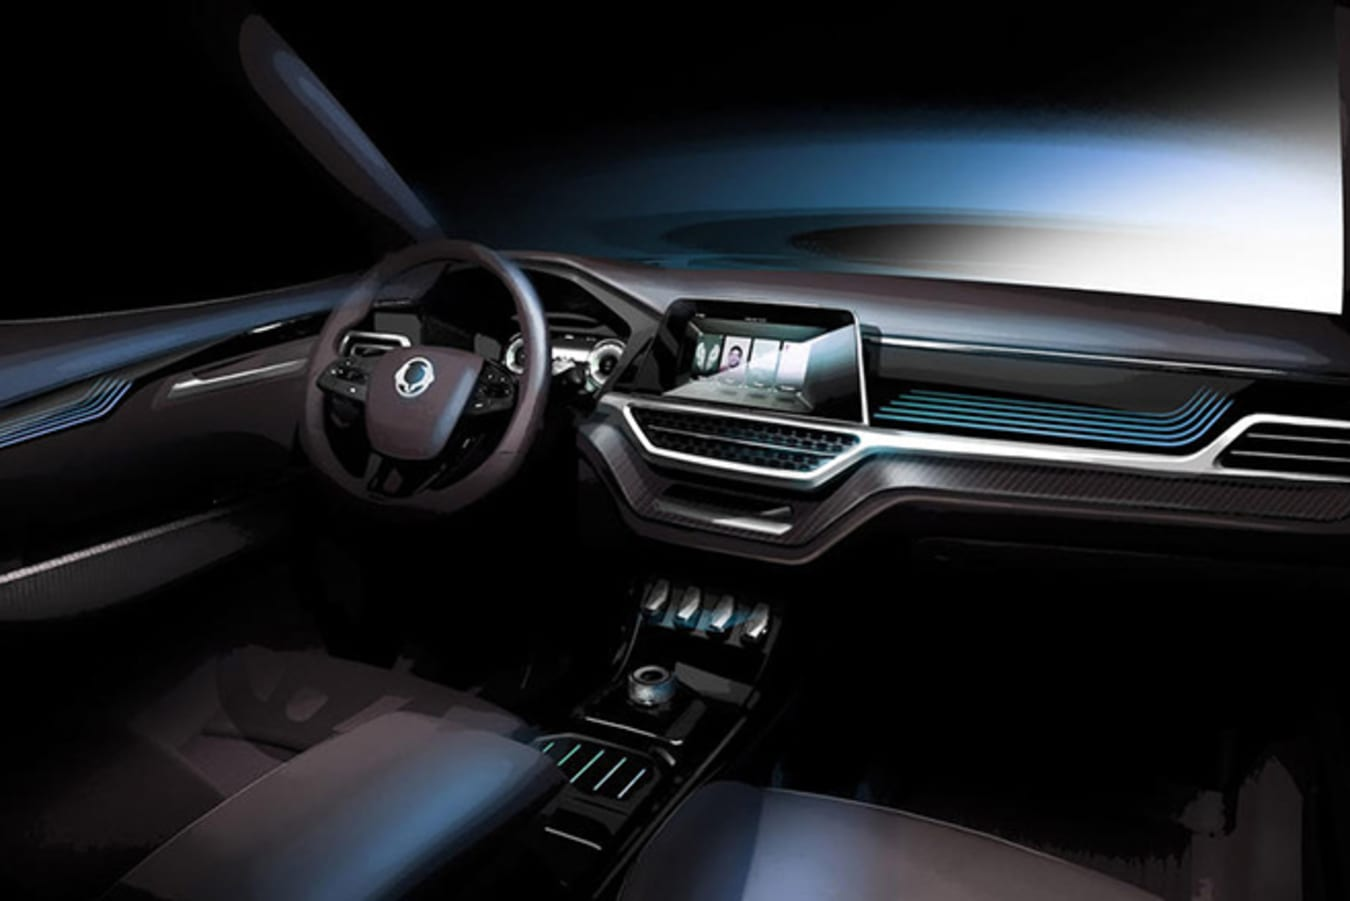 SsangYong teases new SUV ahead of 2017 Geneva Motor Show